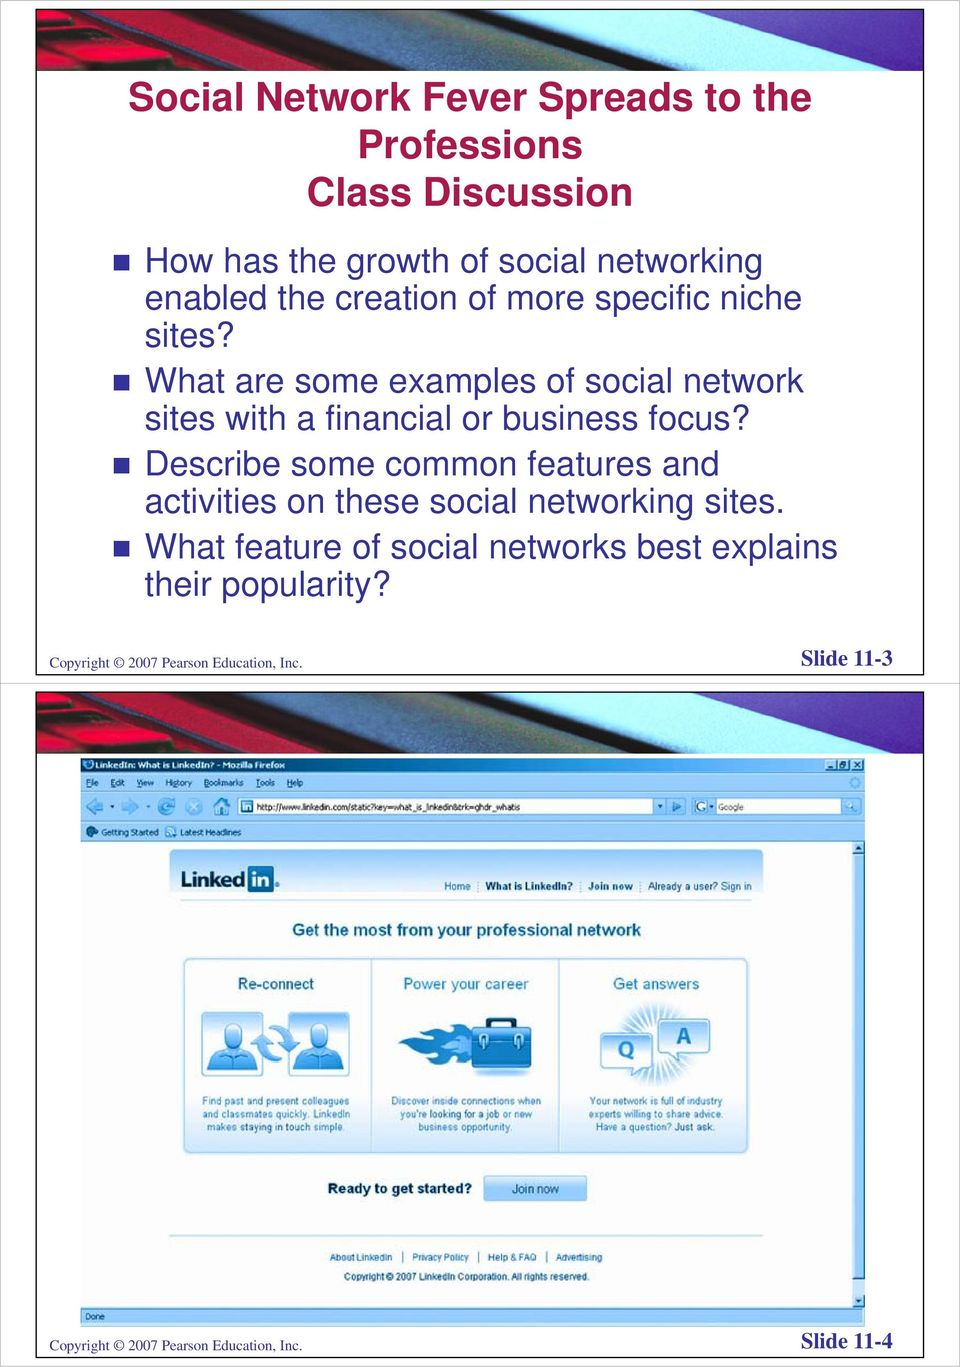 Describe some common features and activities on these social networking sites.